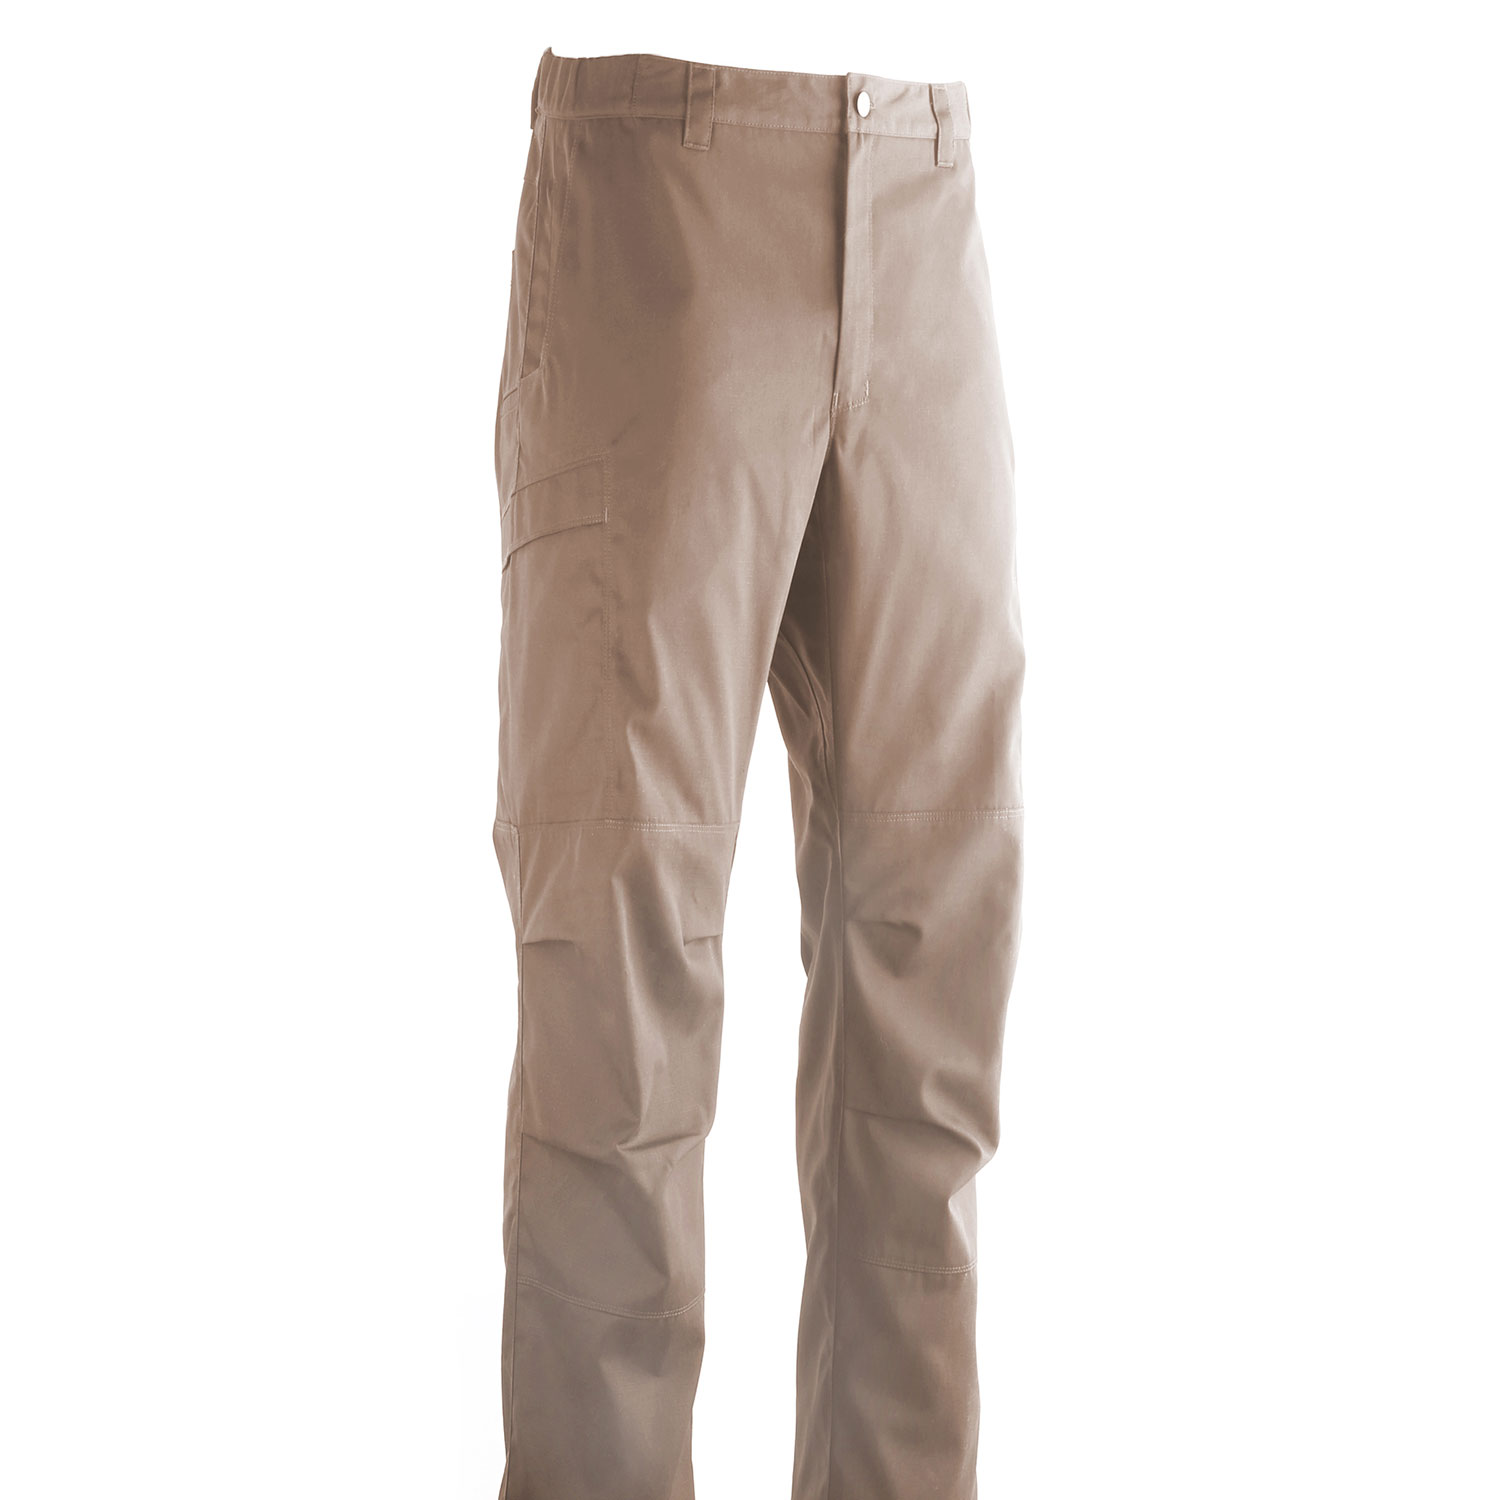 Vertx Womens Phantom LT 2.0 Tactical Pants